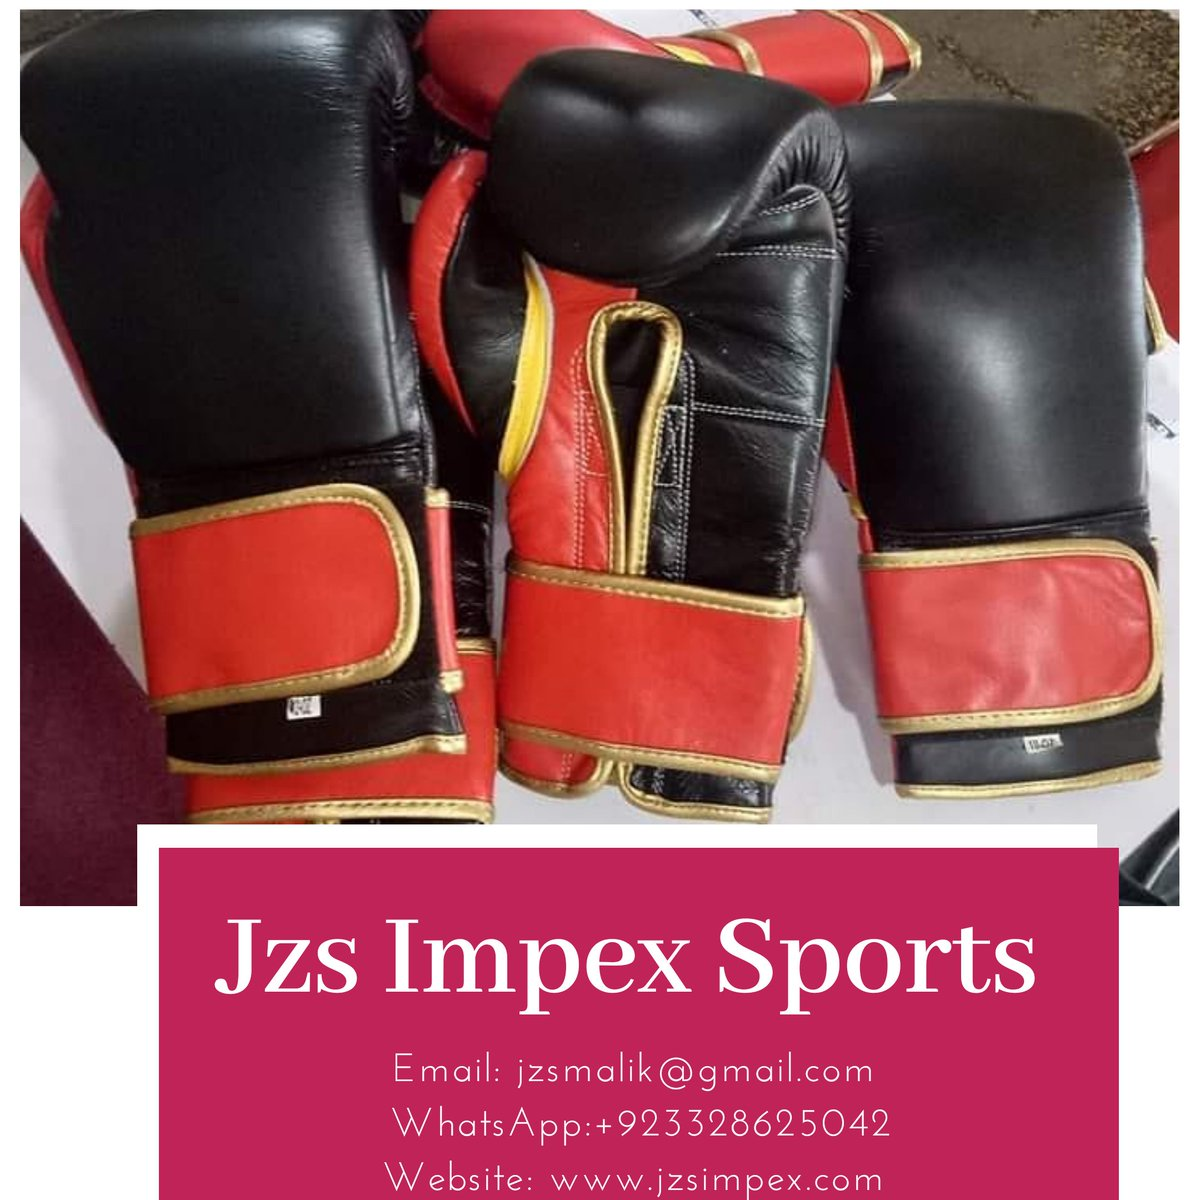 Boxing Gloves Supplier (@JzsImpex) | Twitter